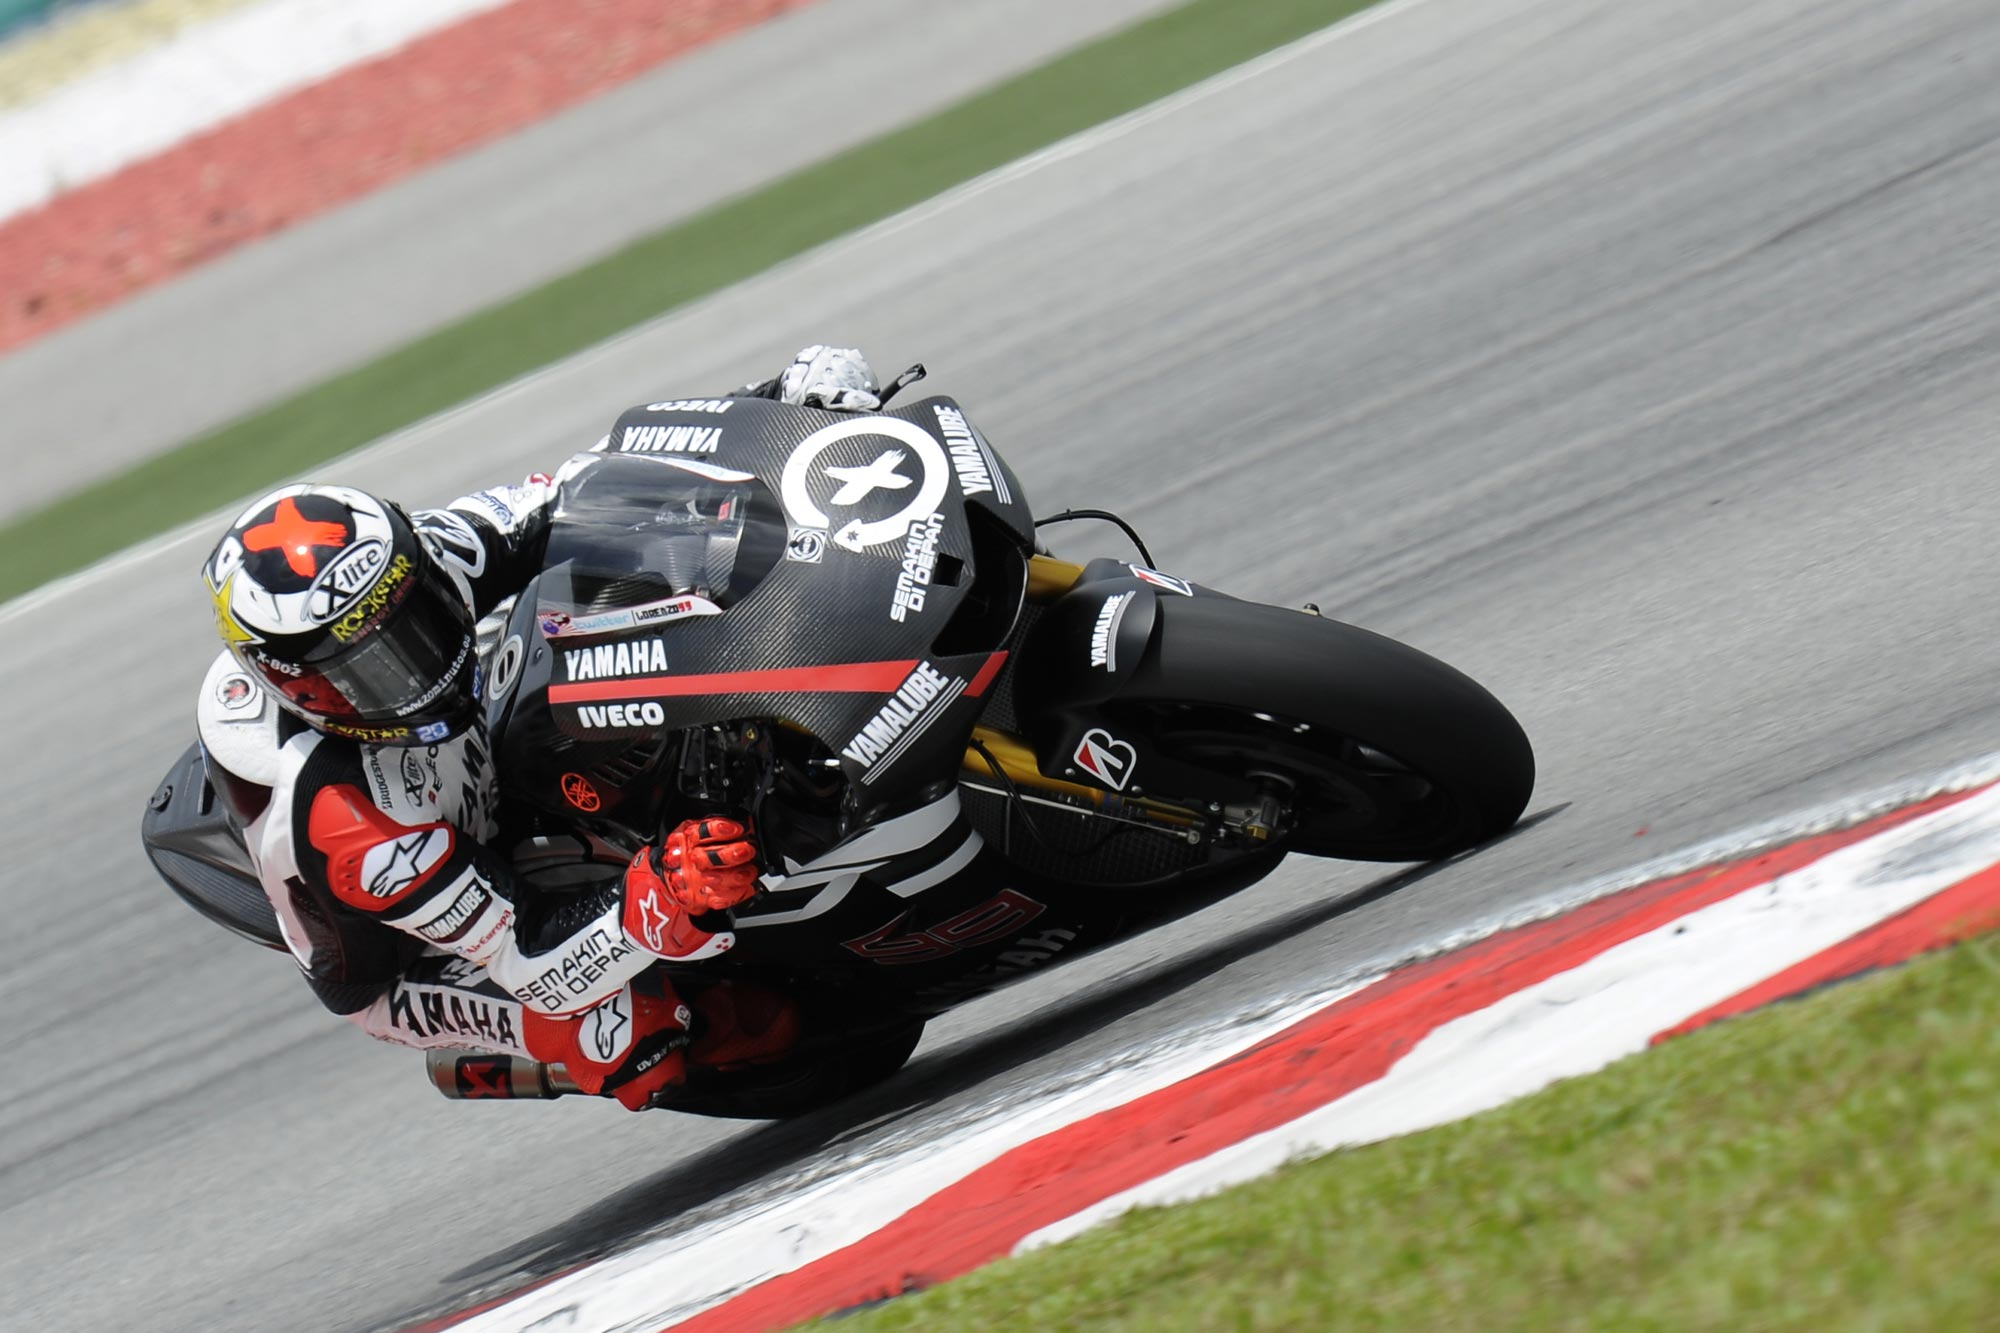 MotoGP: Test Results & Photos from Day 1 at Sepang - Asphalt & Rubber